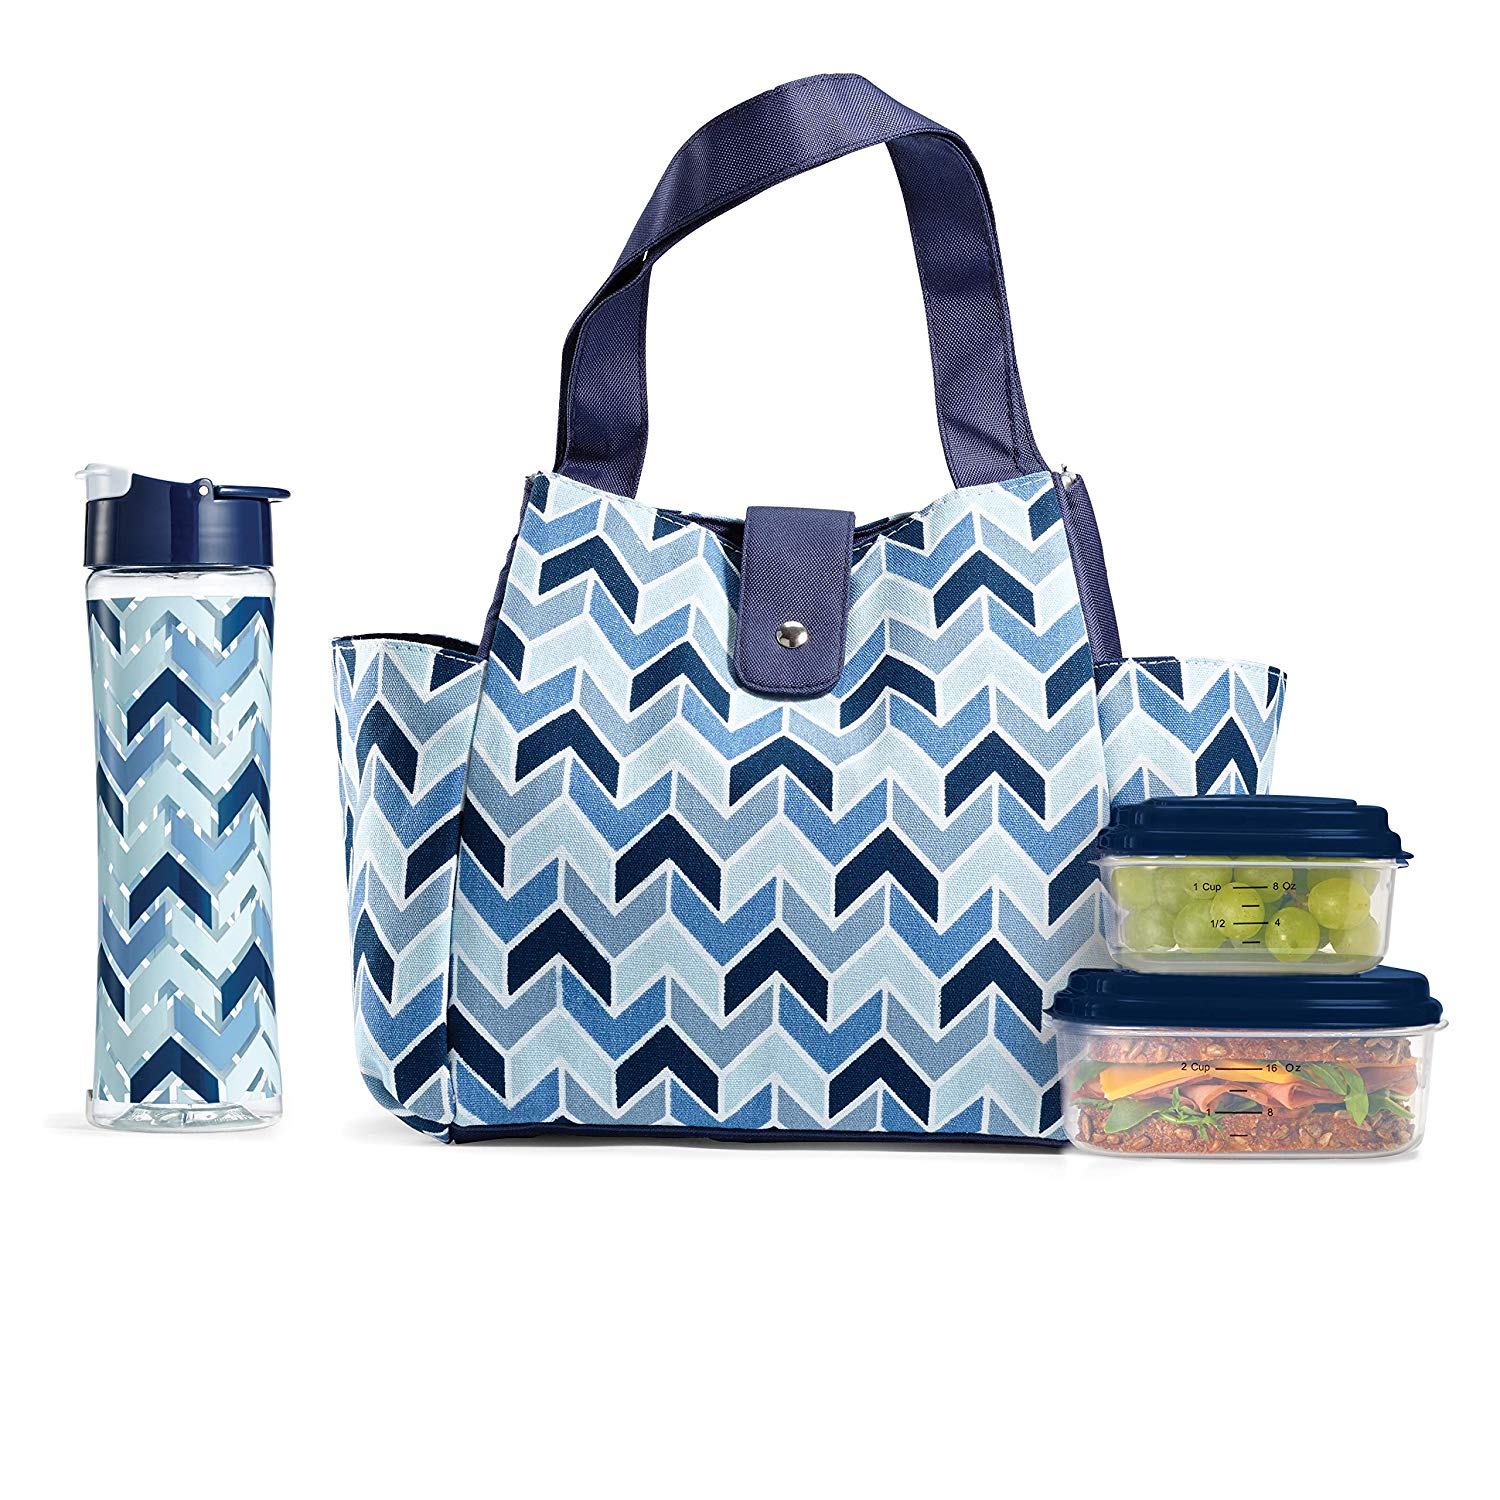 fbd5d7e5474d Westport Insulated Lunch Bag Set